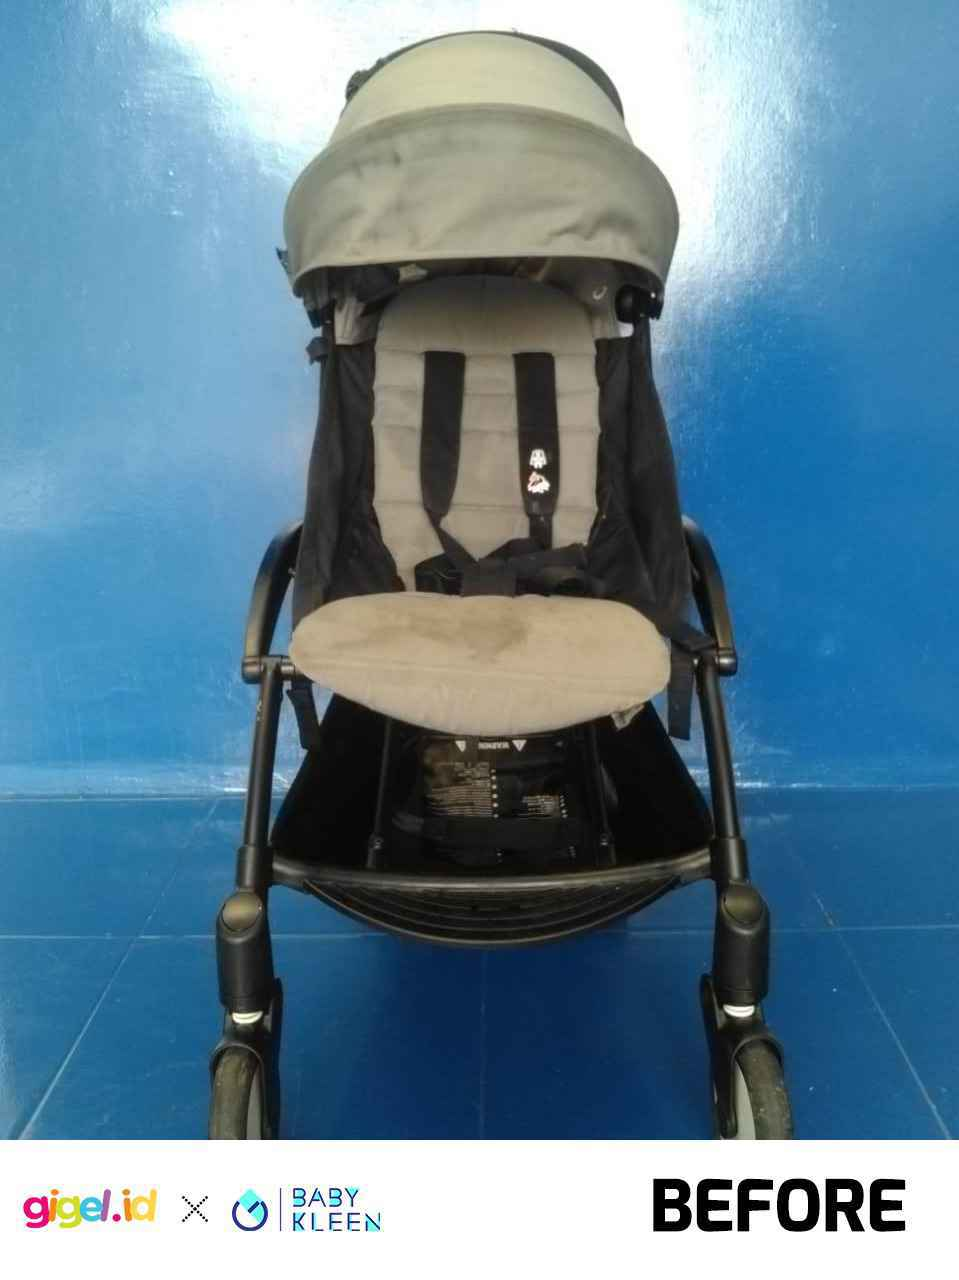 GIGEL.ID x Baby Kleen Laundry Stroller  Double - 2